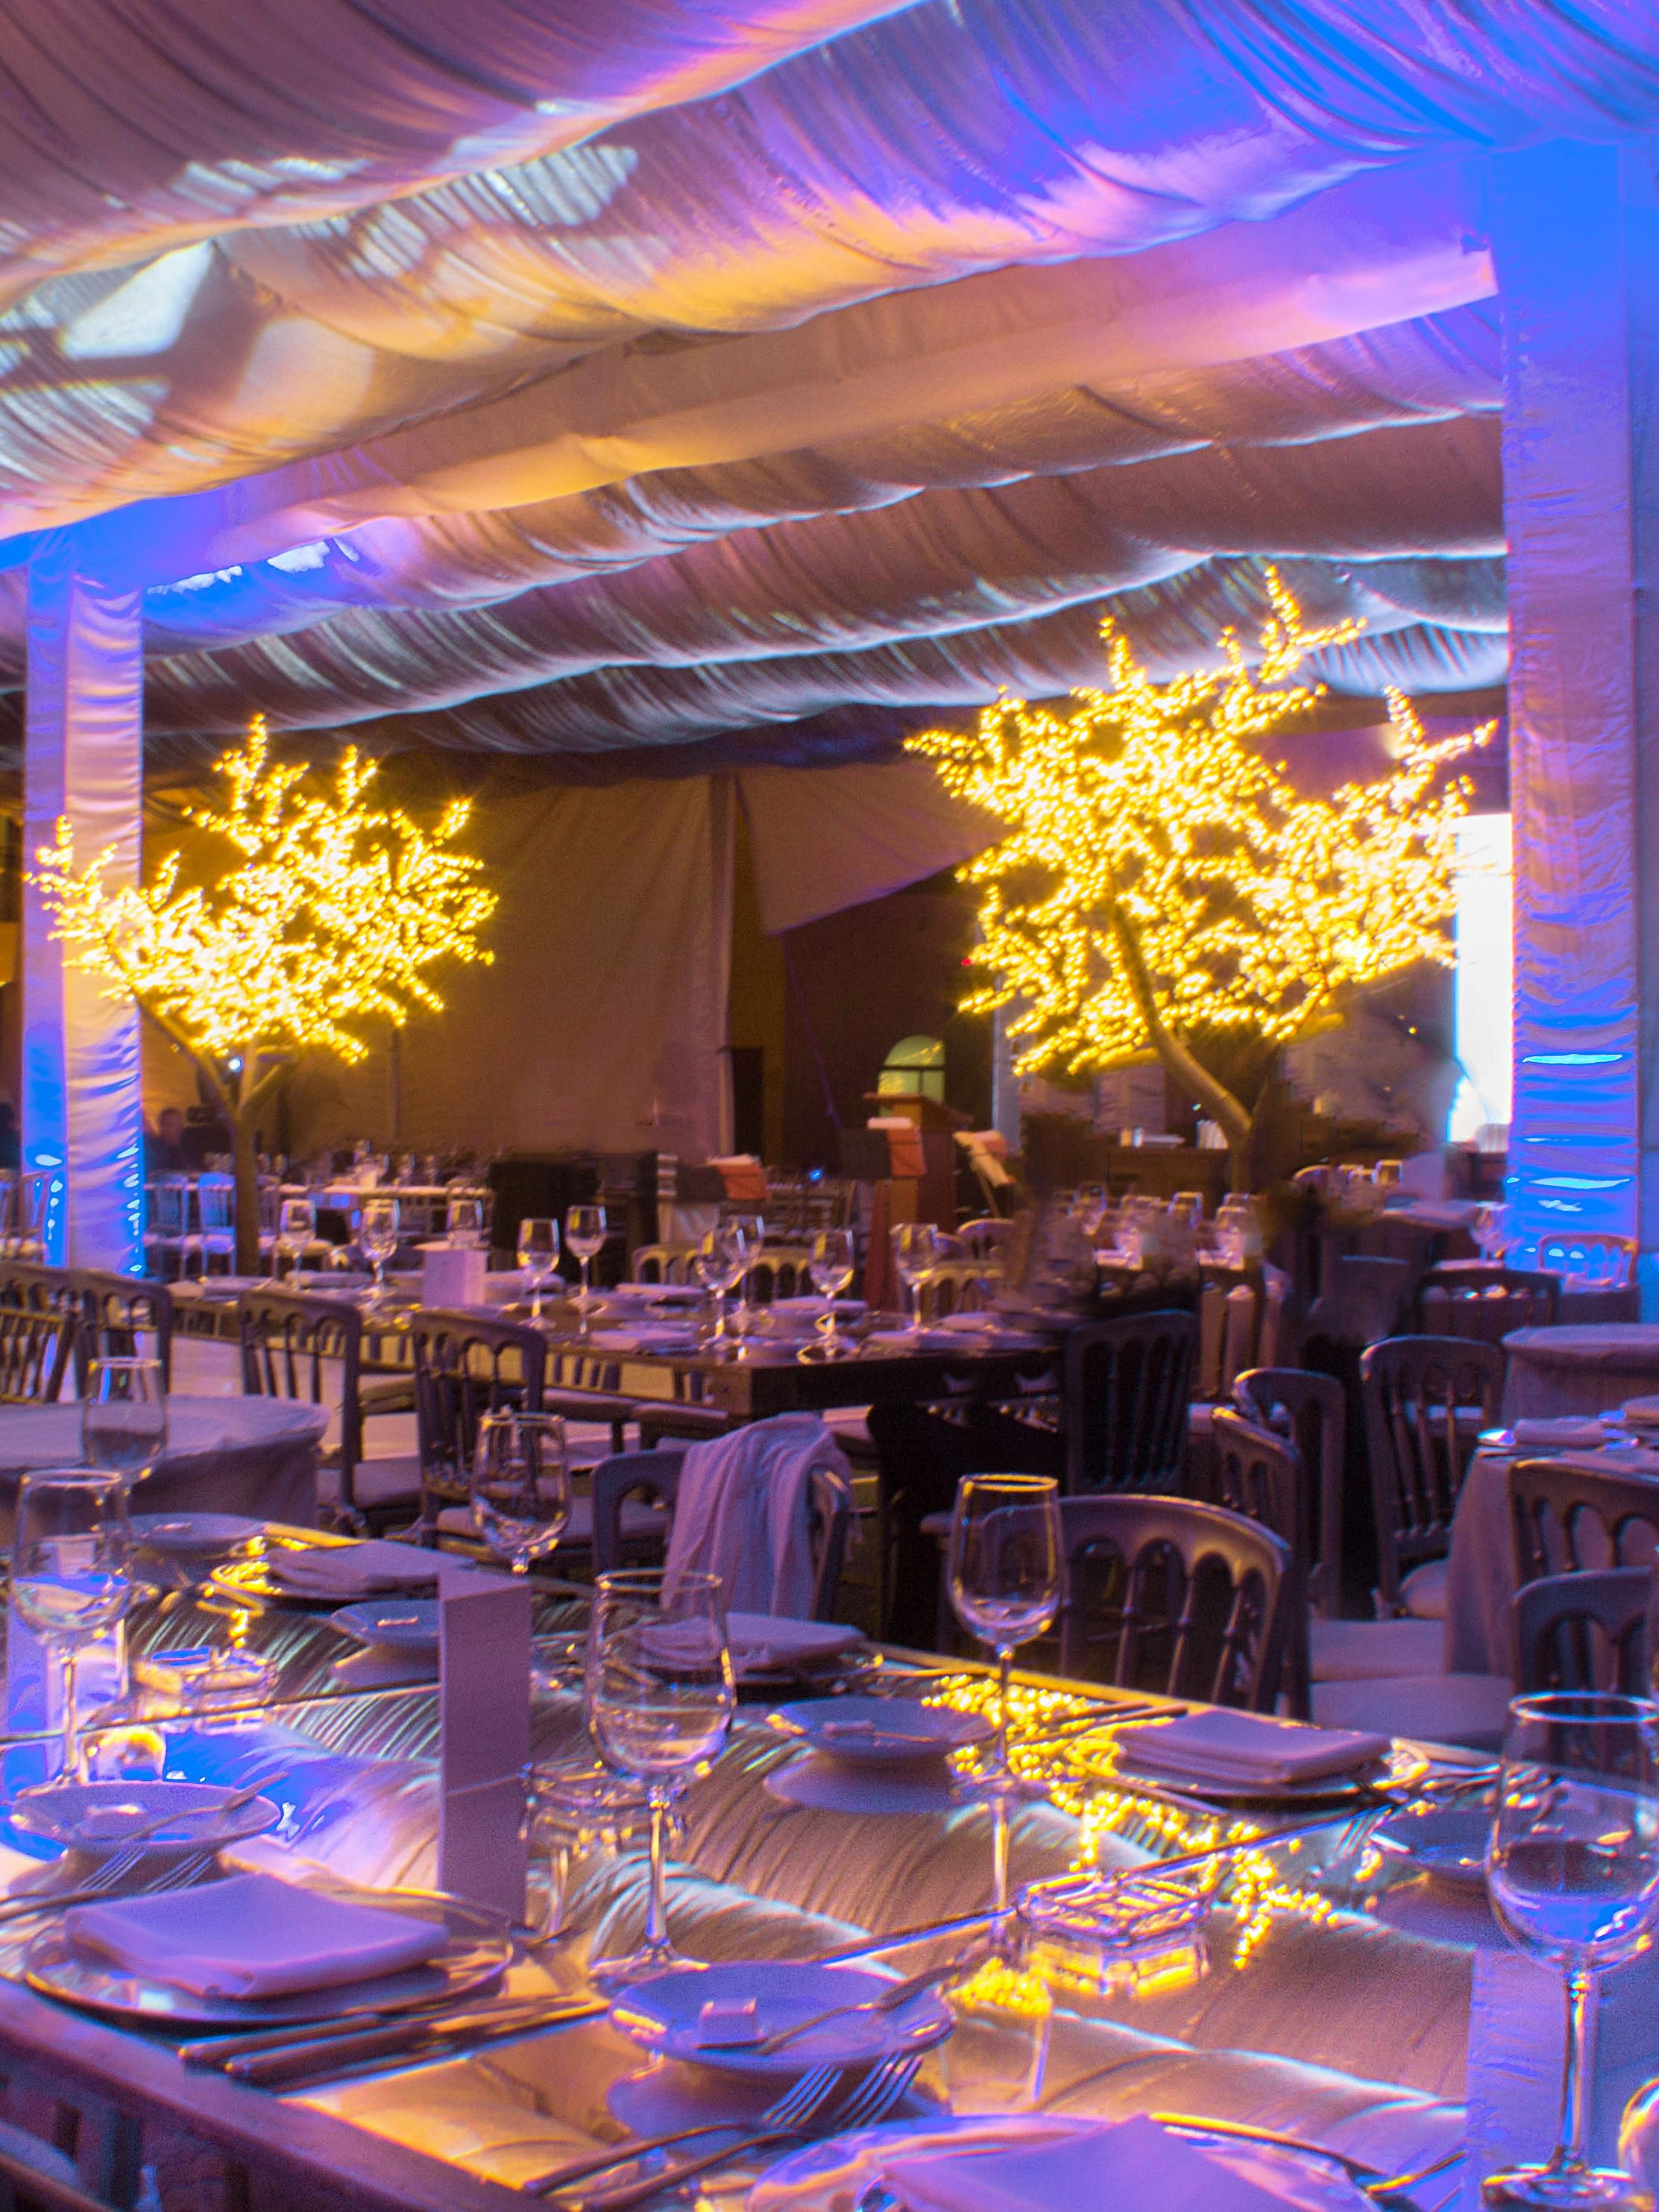 Decoraci n evento empresarial iluminaci n eventos for Decoracion de salones para eventos